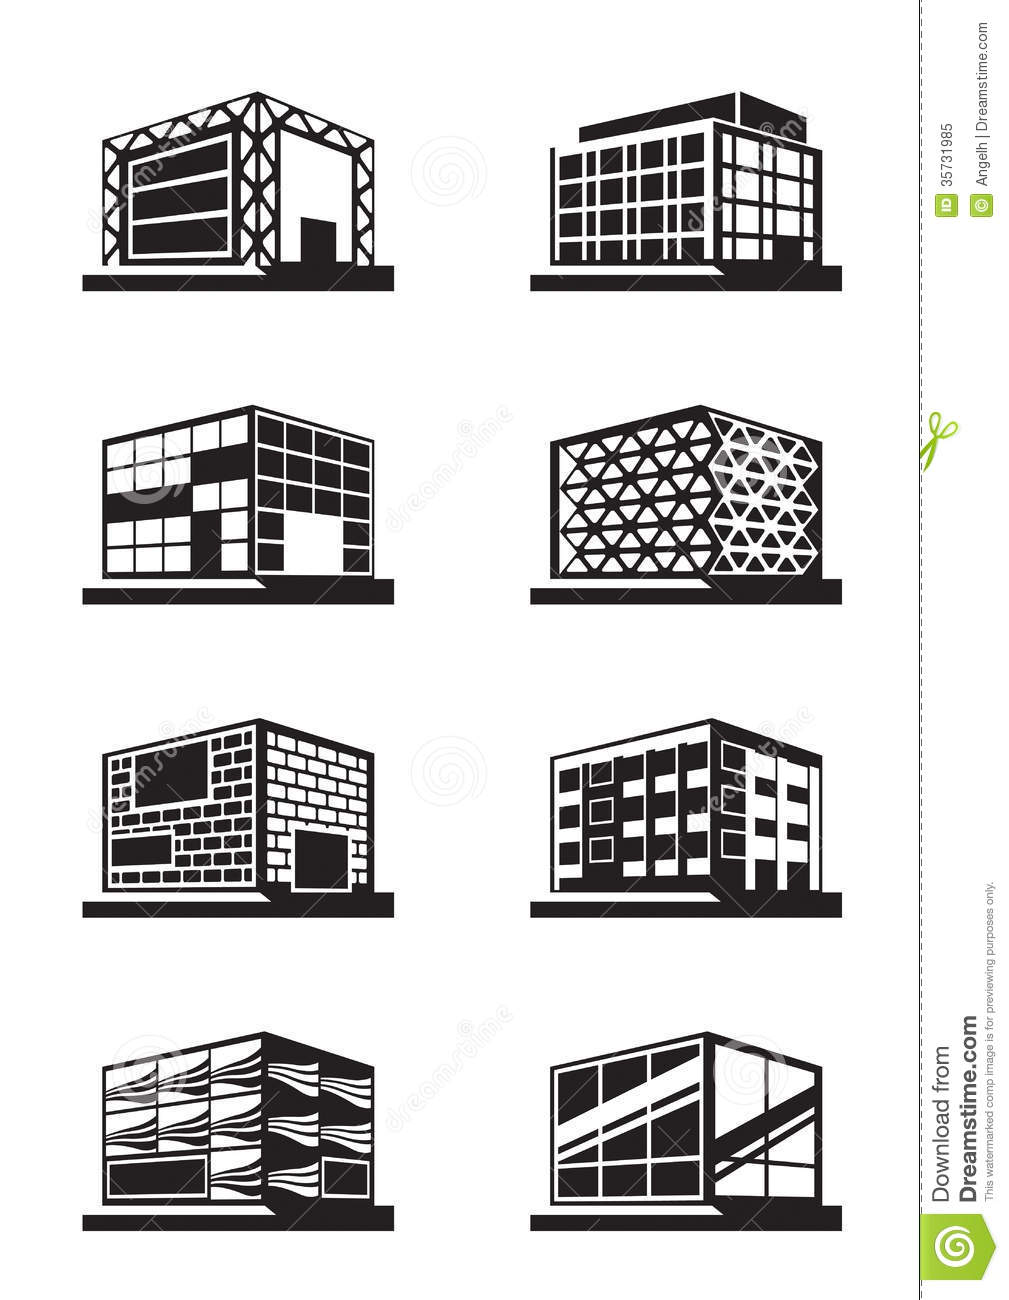 Different Facades Of Buildings Stock Vector - Illustration of